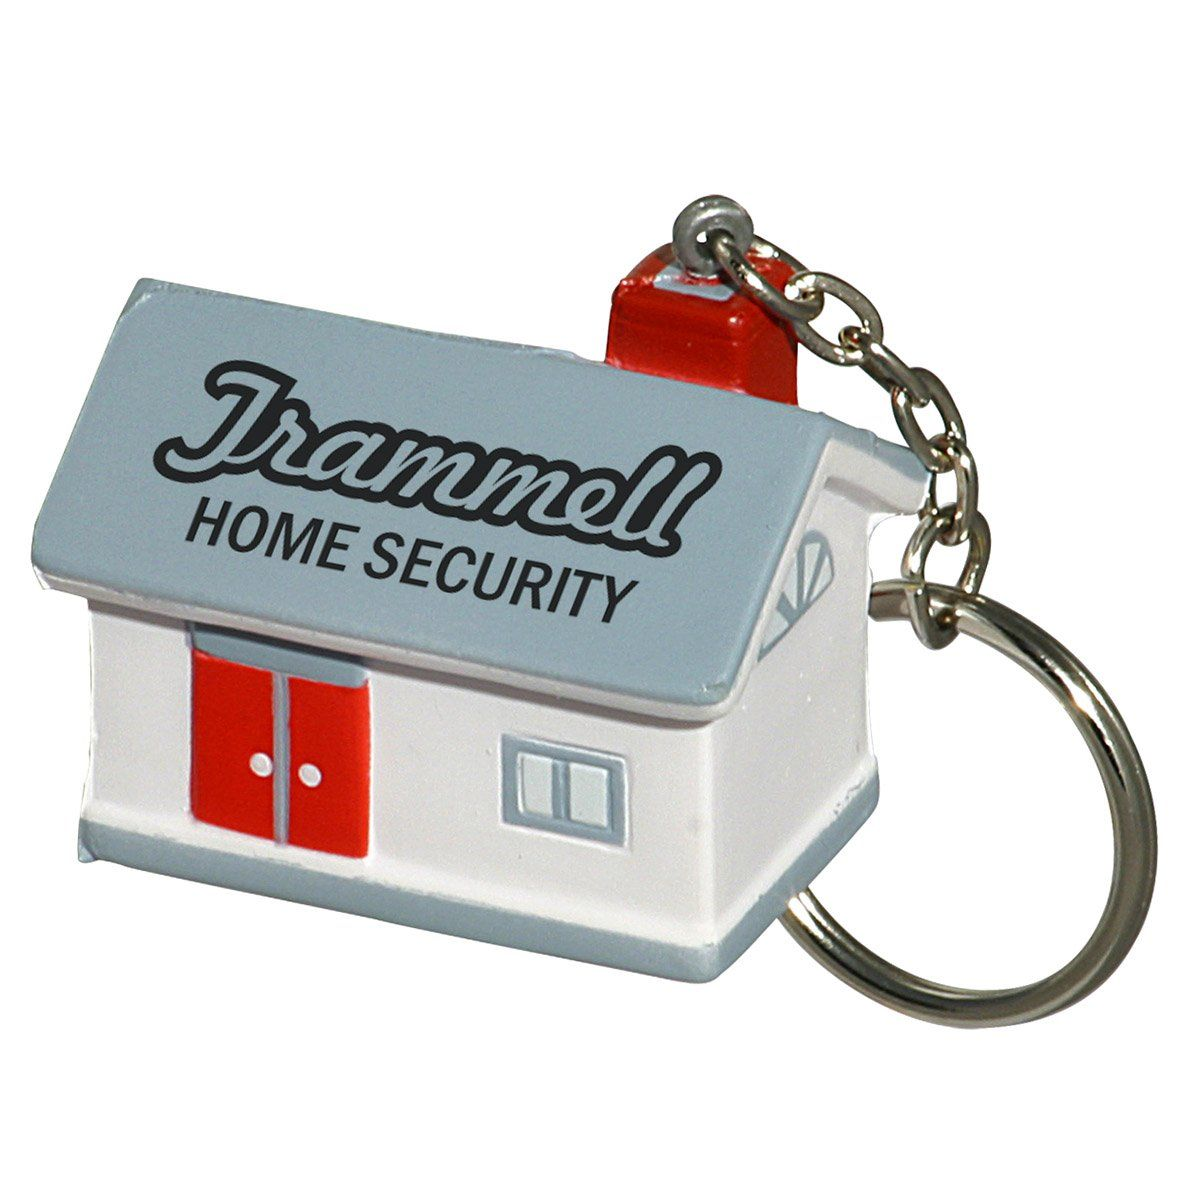 House Key Chain Corporate gifts, How to relieve stress